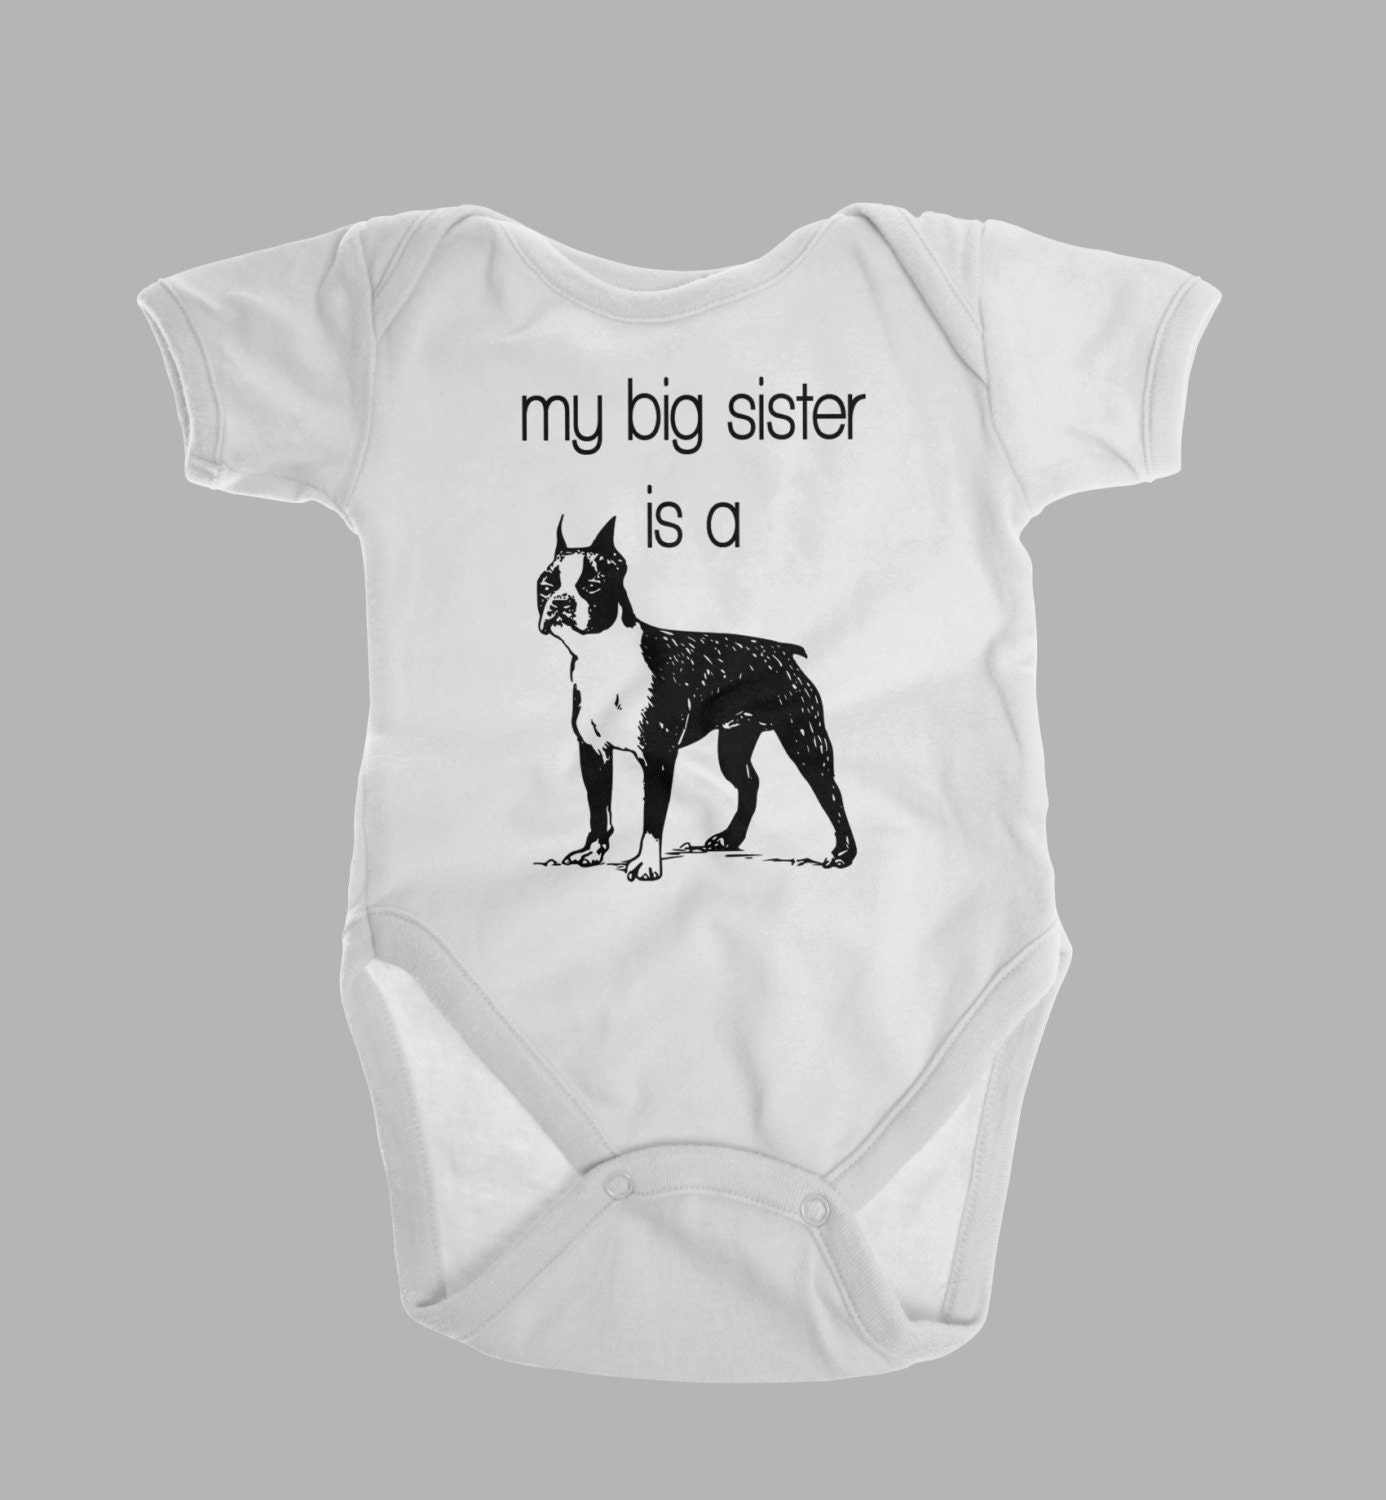 Boston terrier baby clothes dog baby clothes dog and by emeejoco